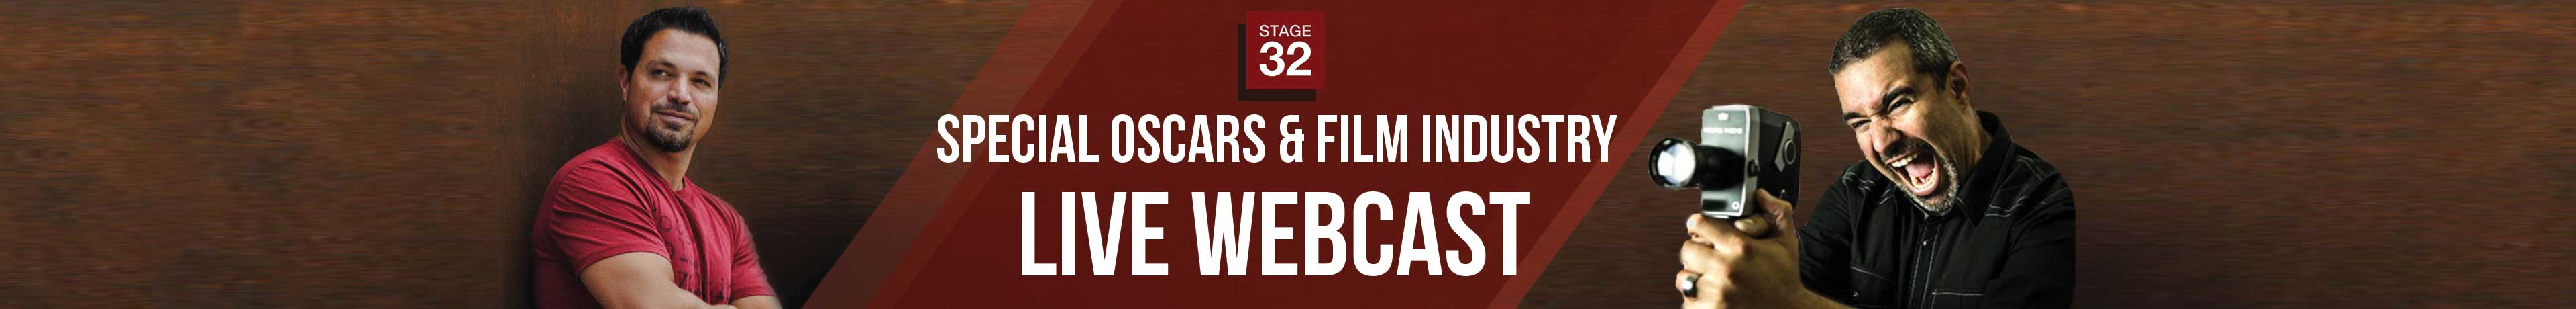 Special Oscars & Film Industry Live Webcast